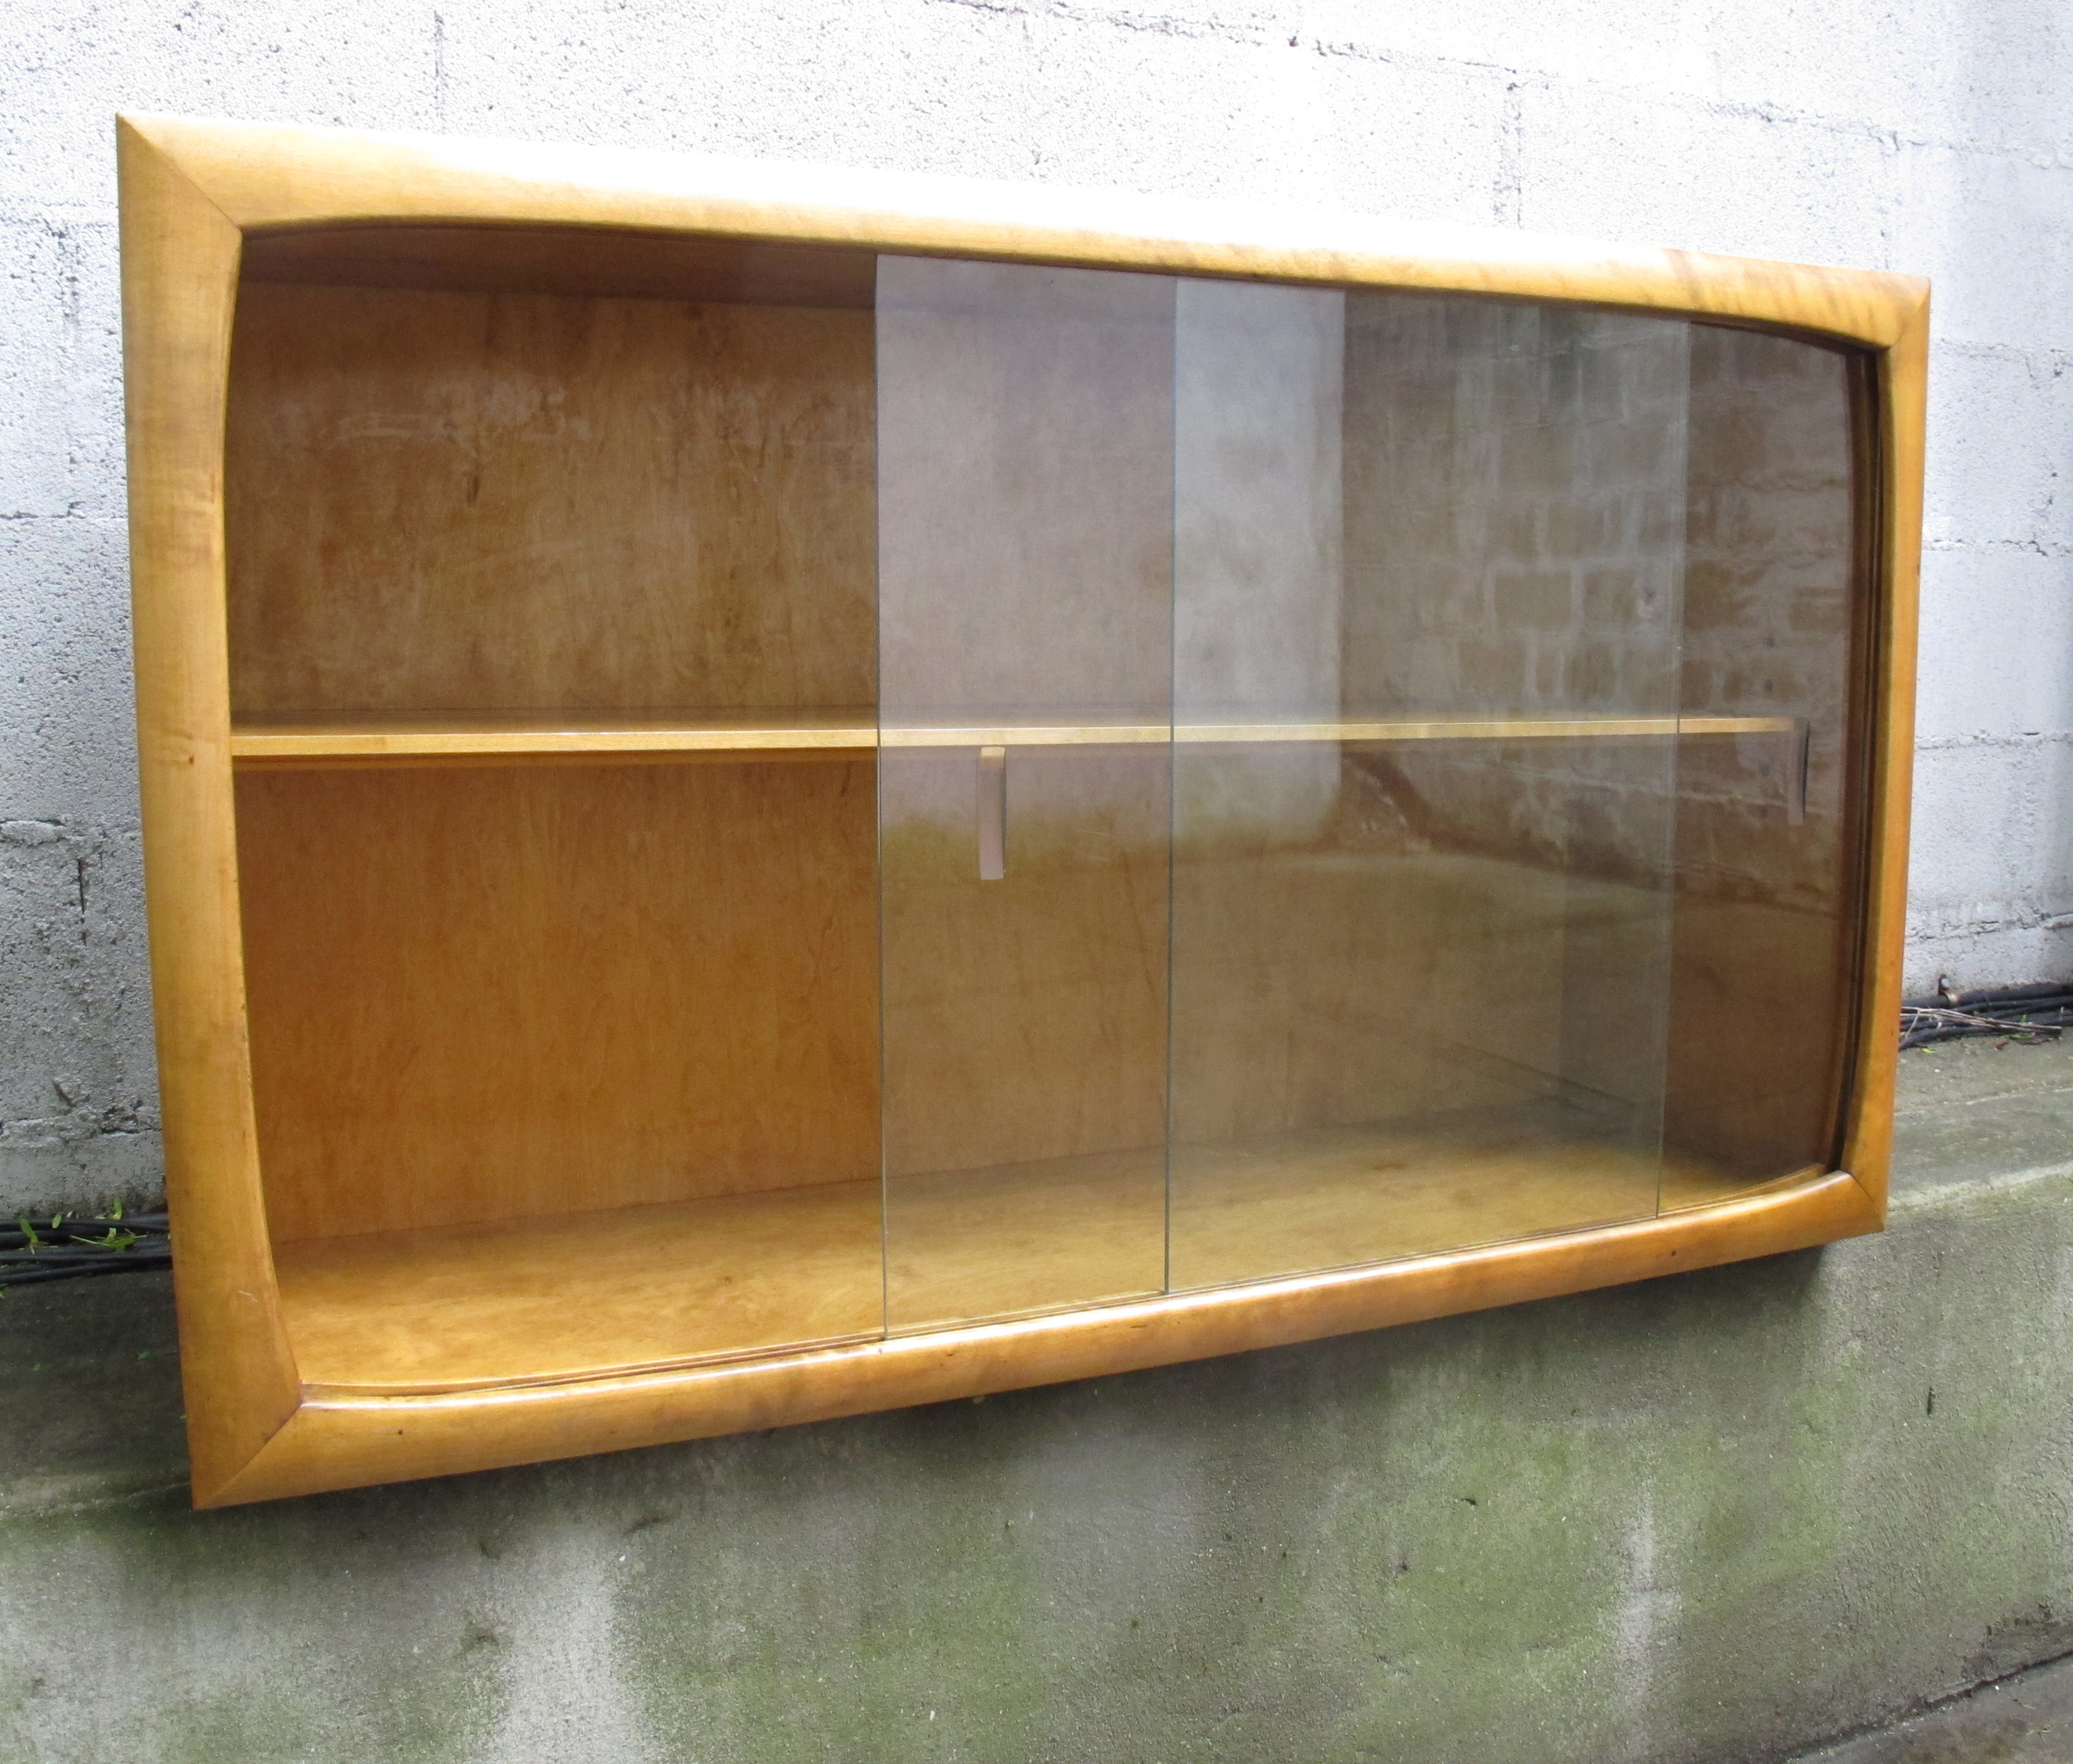 SWEDISH MODERN GLASS CABINET BY EDMOND SPENCE